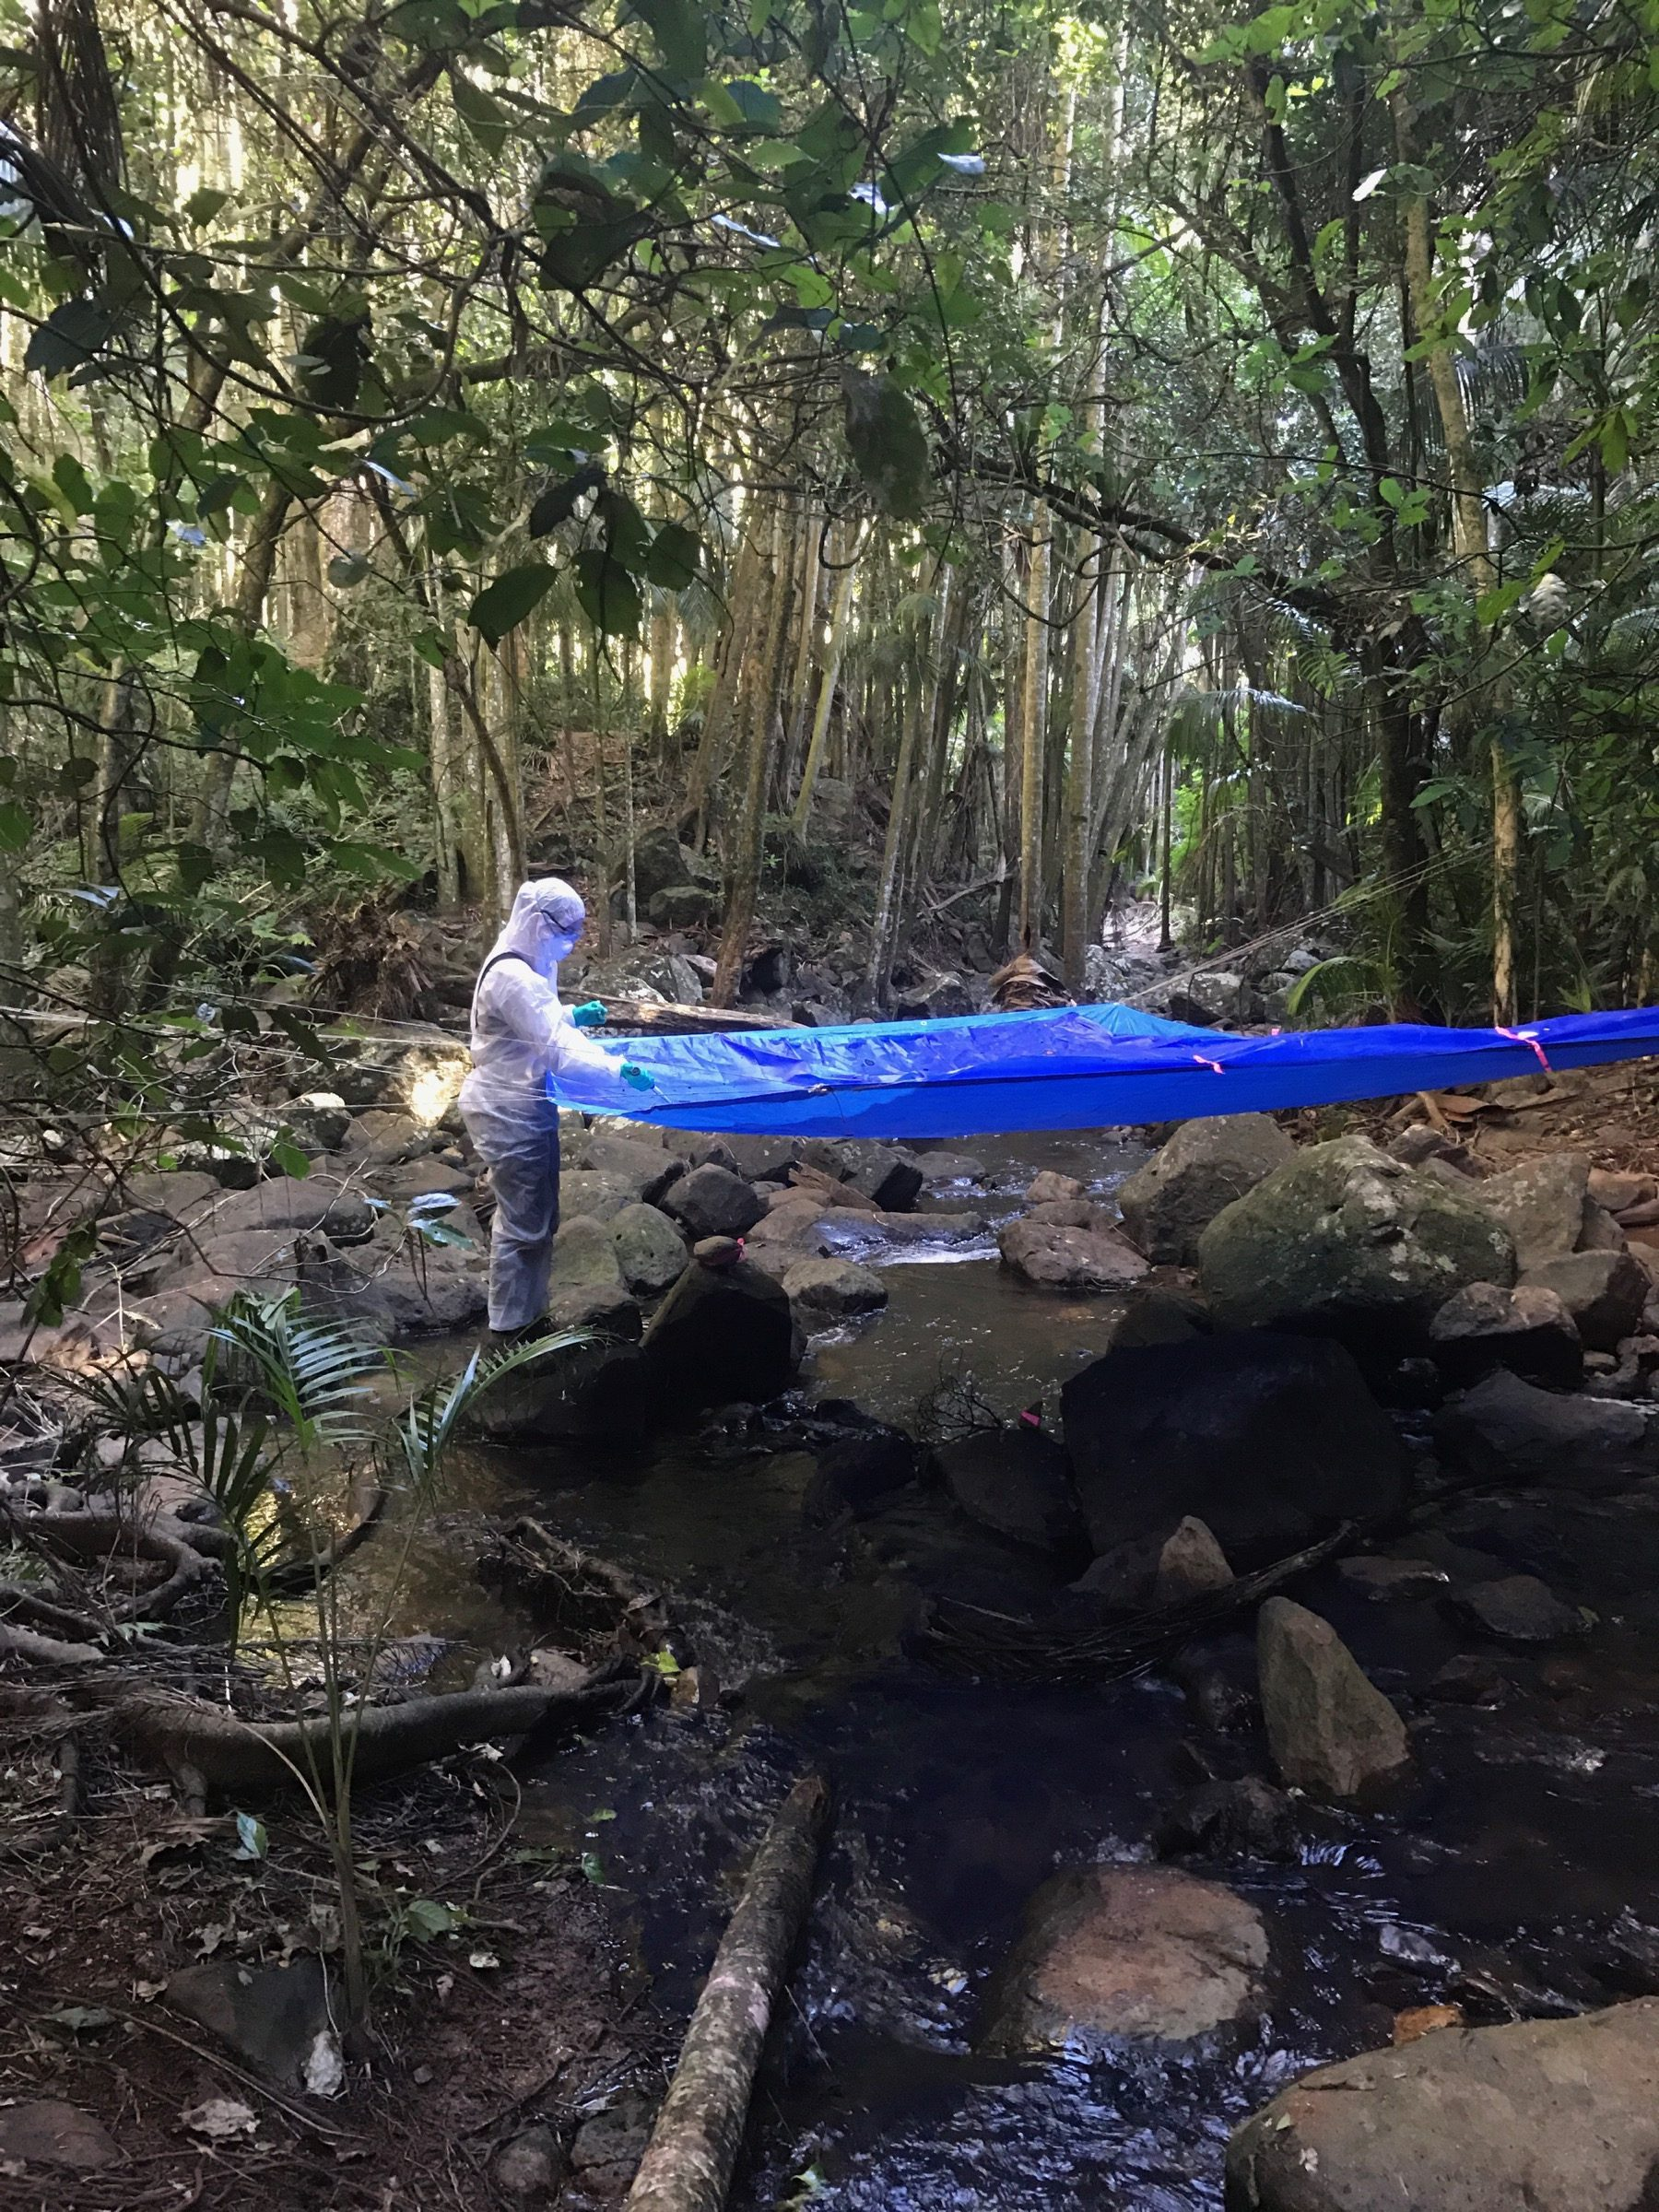 PhD student Tamika Lunn, wearing full personal protective equipment (PPE), conducts an under-roost Hendra virus survey after a spillover event in the Queensland hinterland, Australia. Photograph by Geoffrey Smith